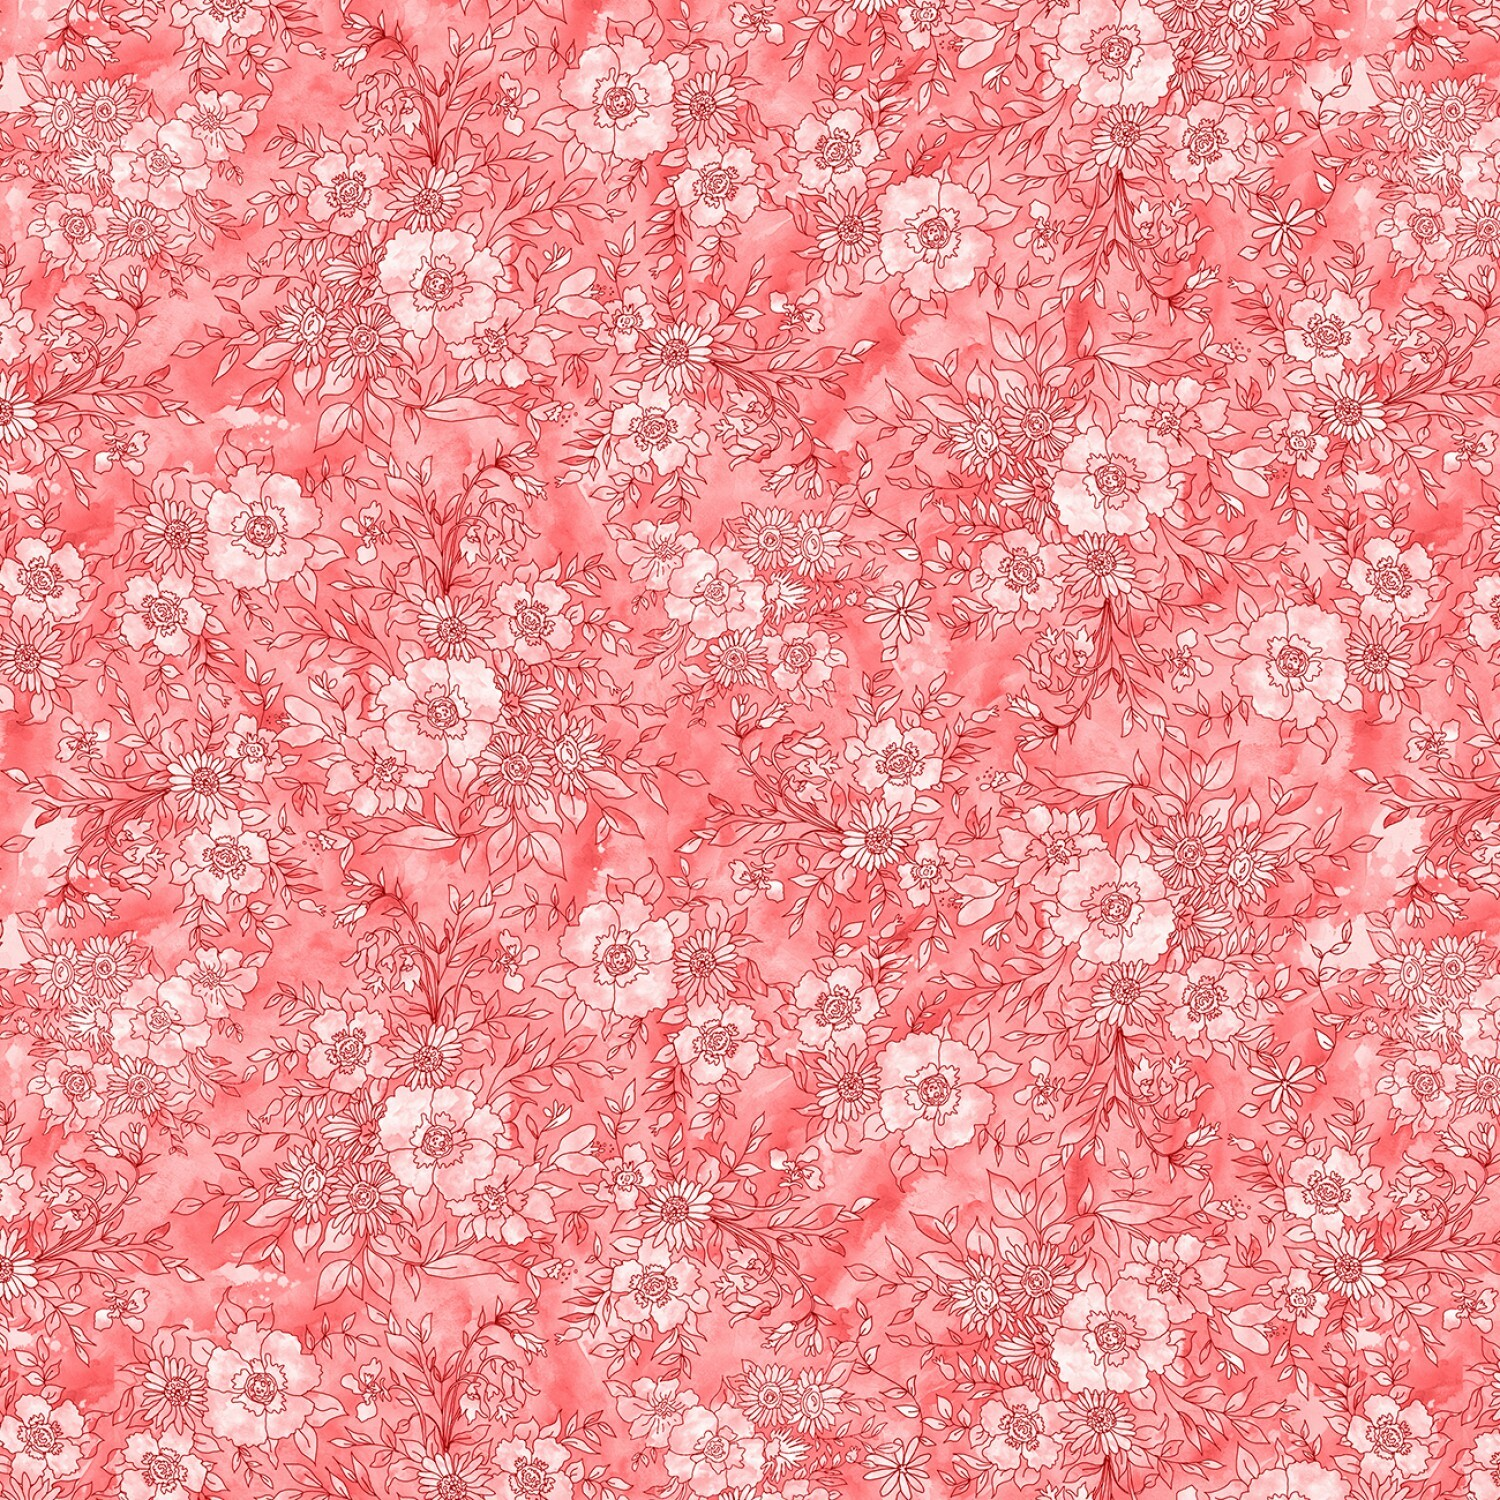 Meadow Bloom - Red Floral Toile - 1/2m cut 57236